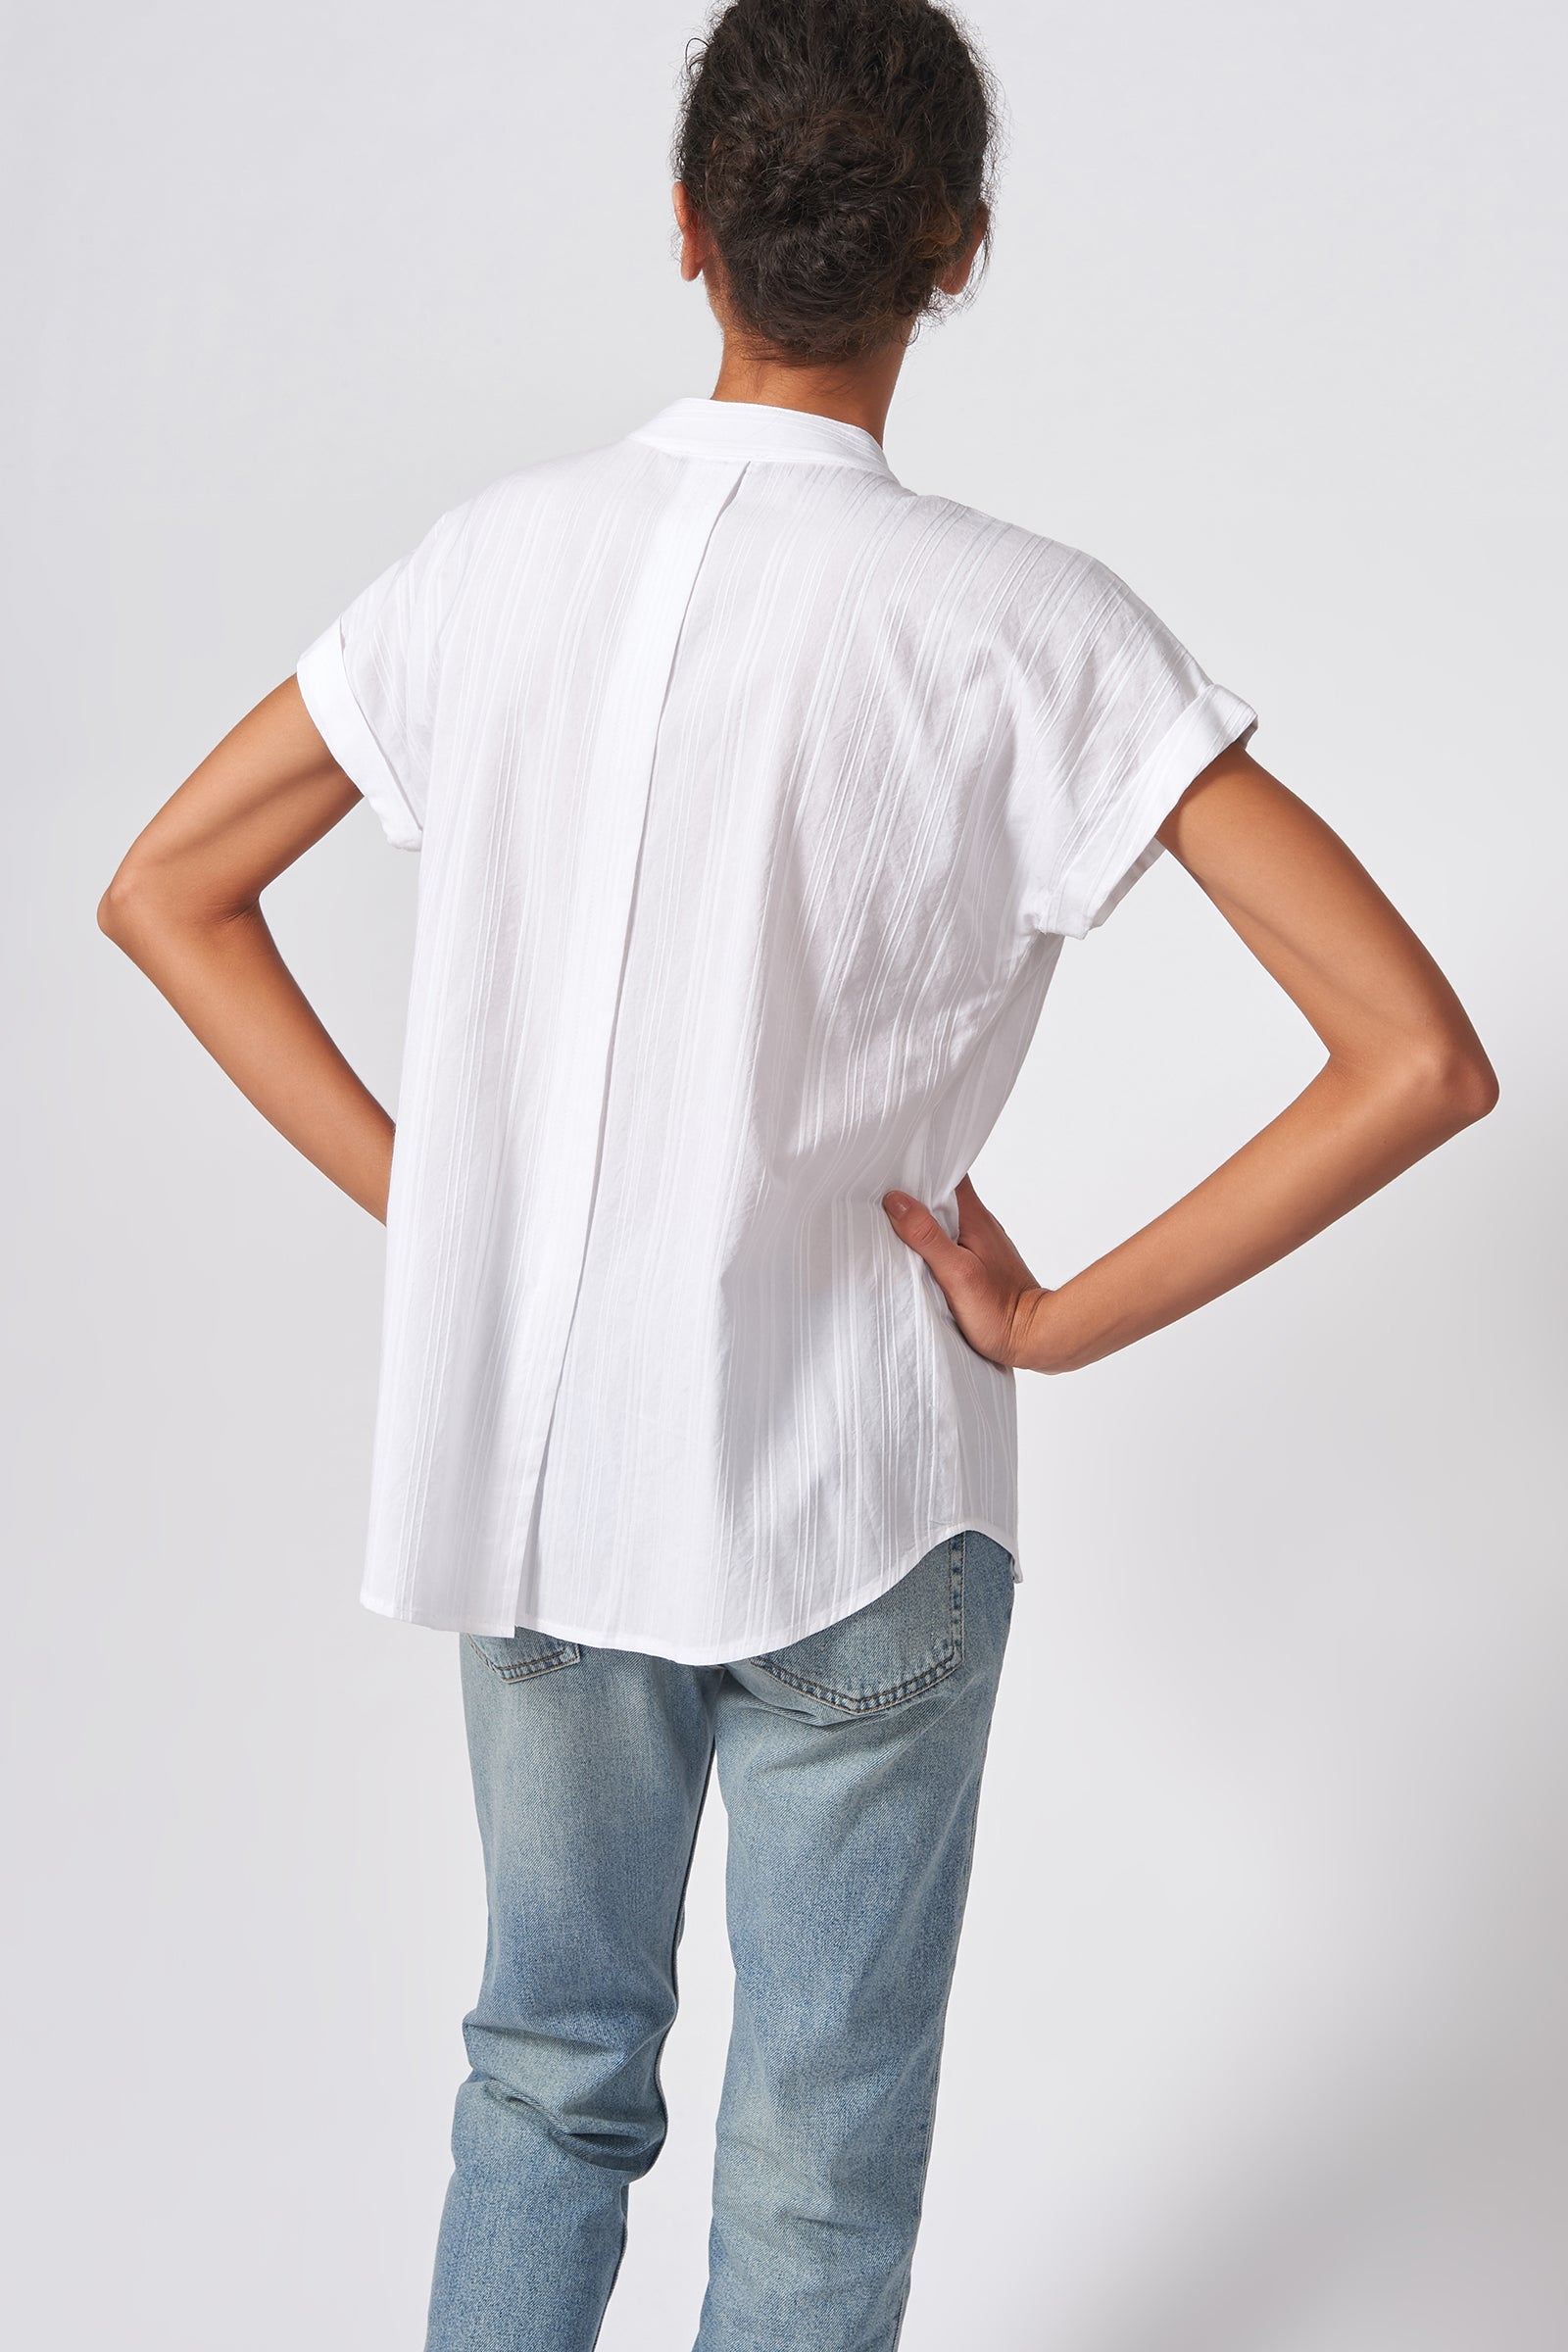 Kal Rieman Vent Back Collar Shirt in White Stripe on Model Back View